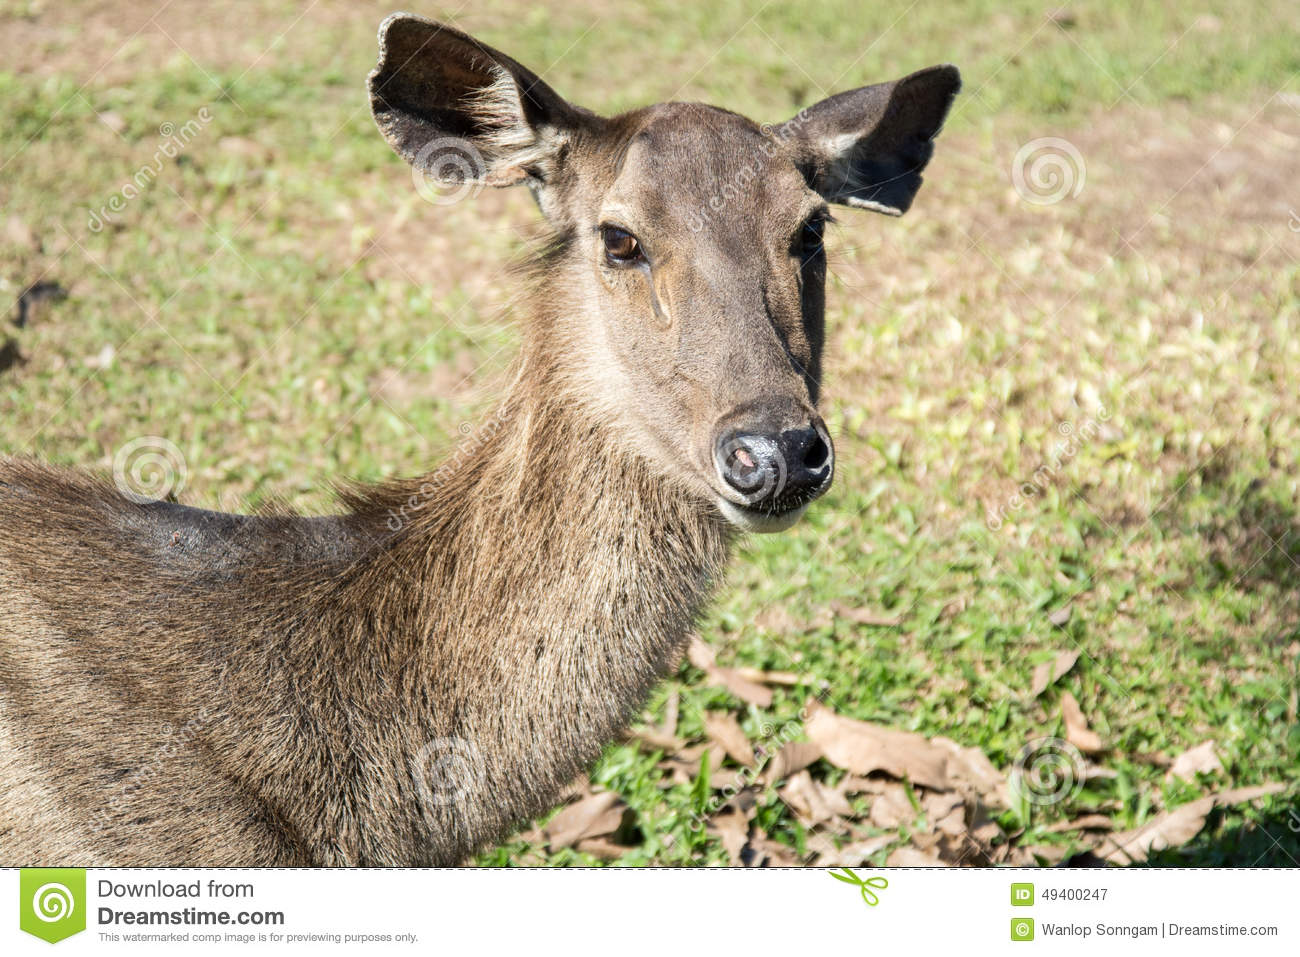 Download Rotwild In Khao Yai Nationalpark, Thailand Stockbild - Bild von frech, dschungel: 49400247